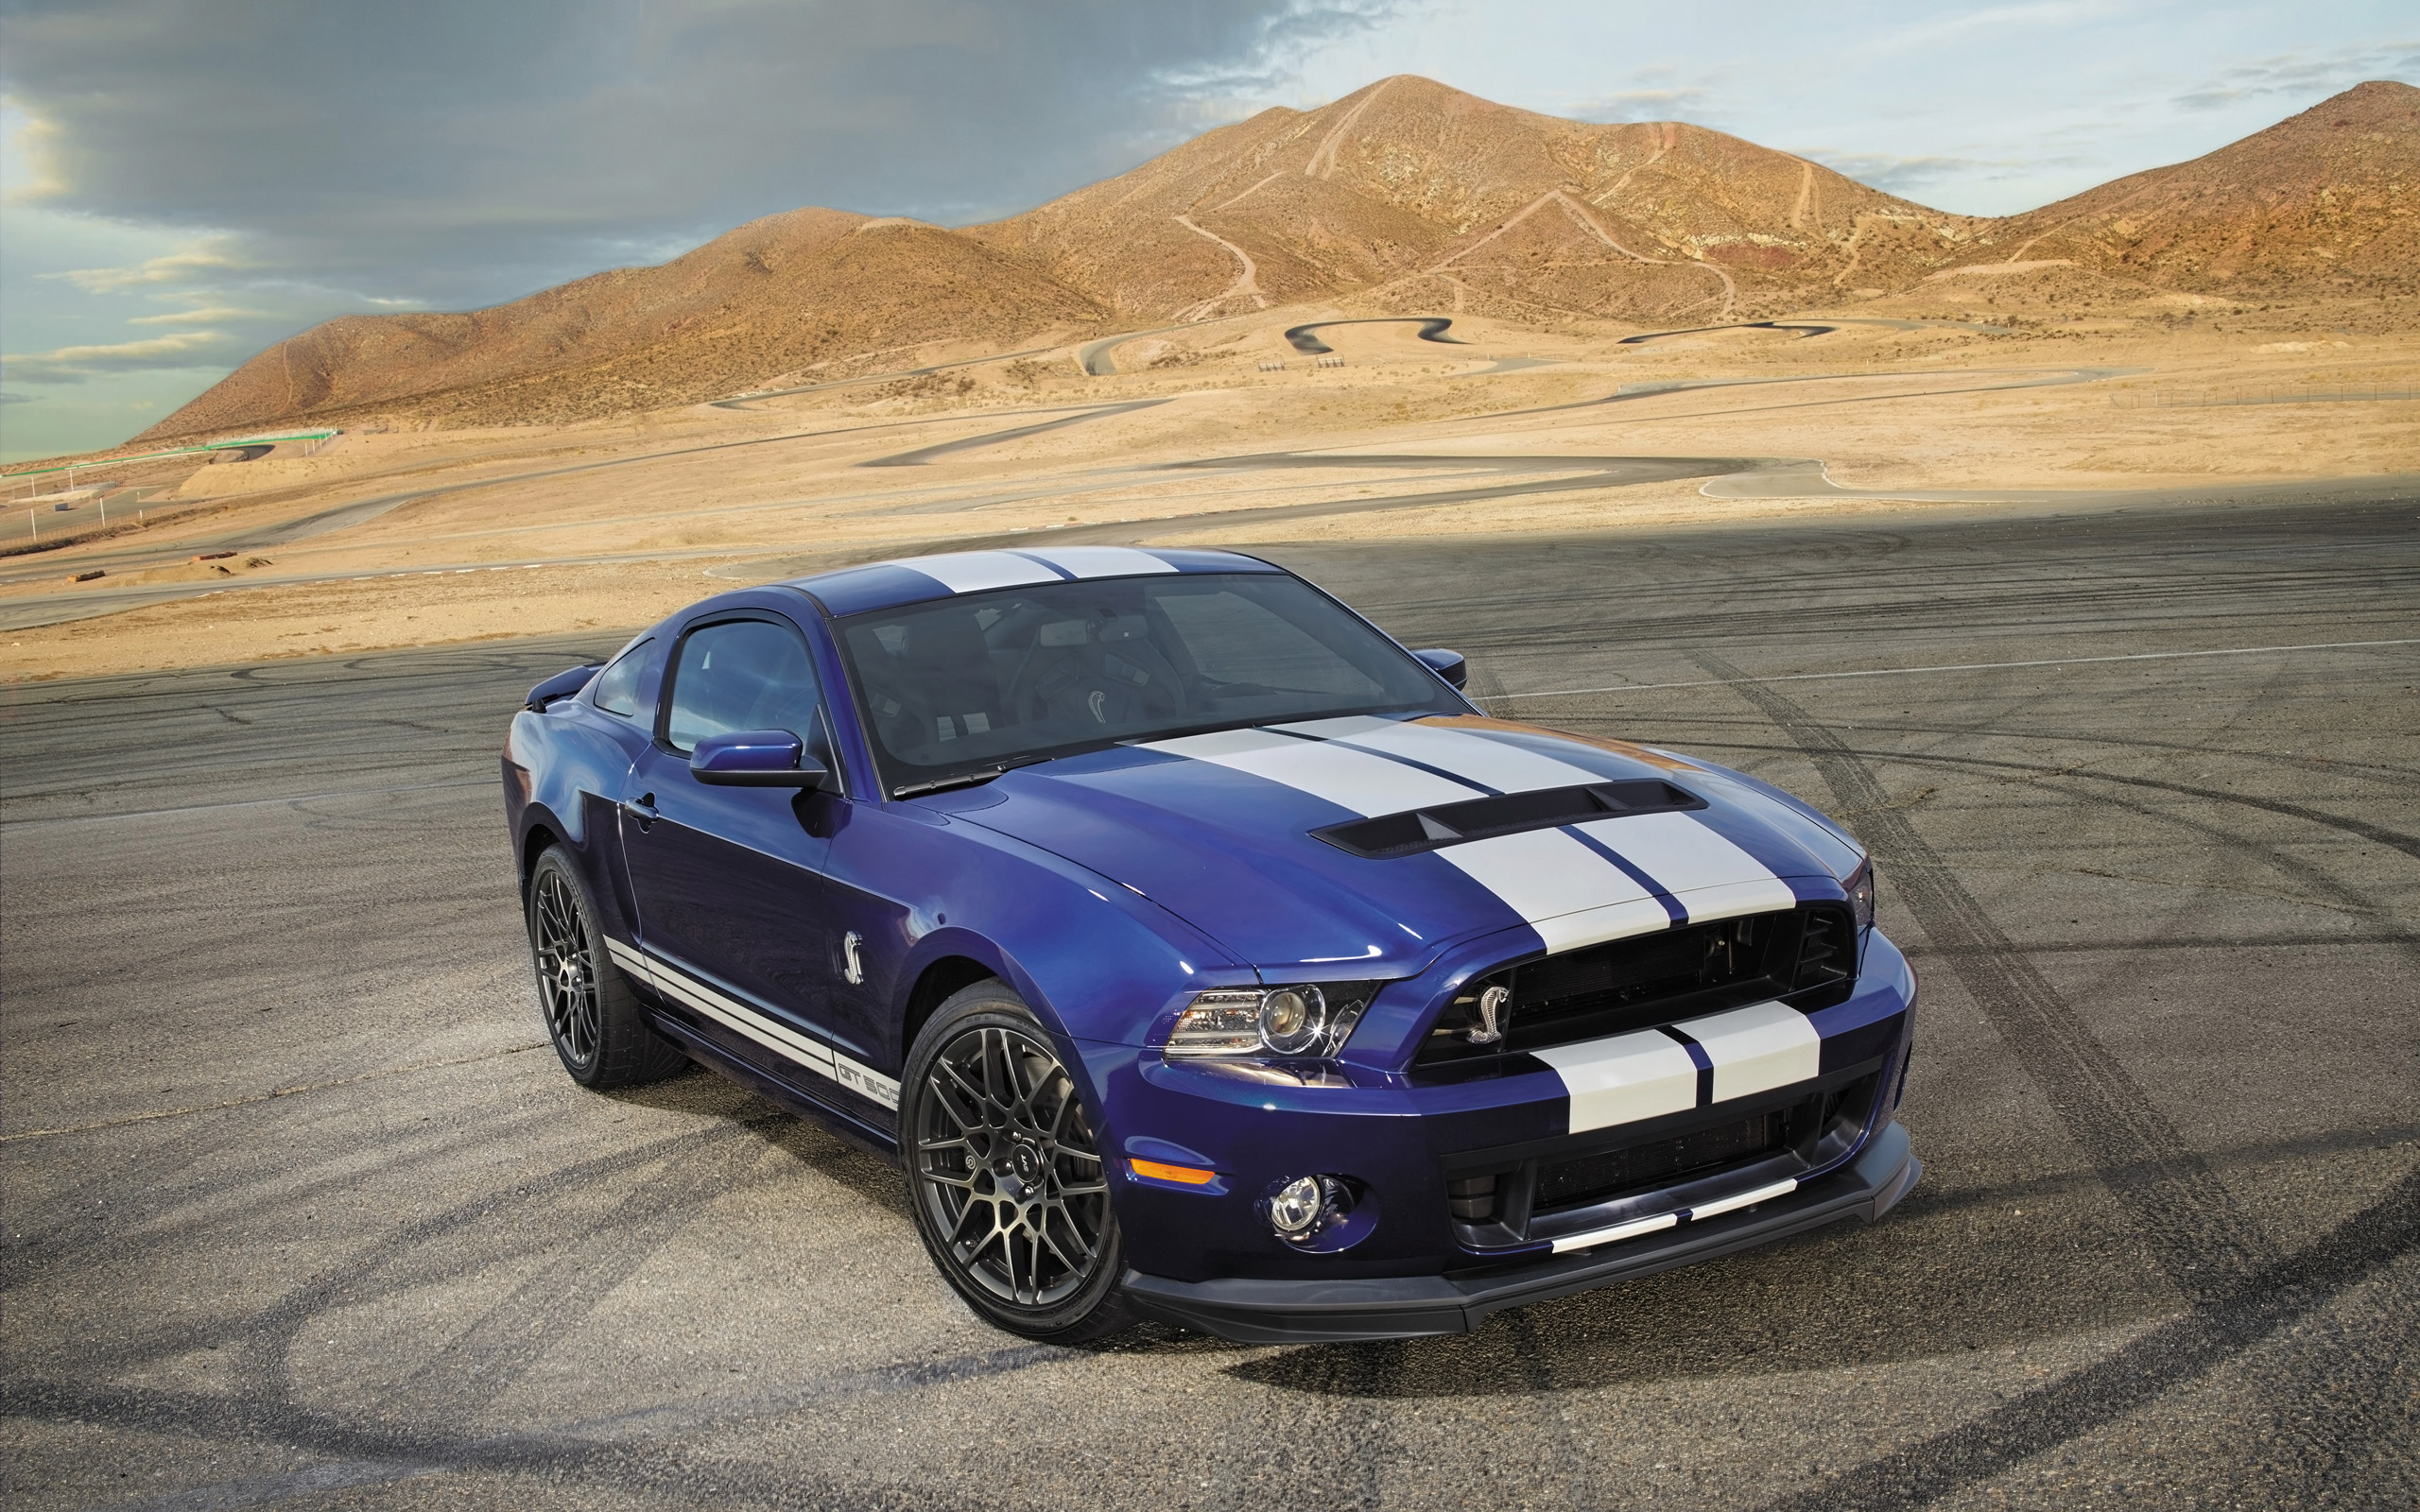 2014 Ford Shelby GT500 2 Wallpaper | HD Car Wallpapers ...